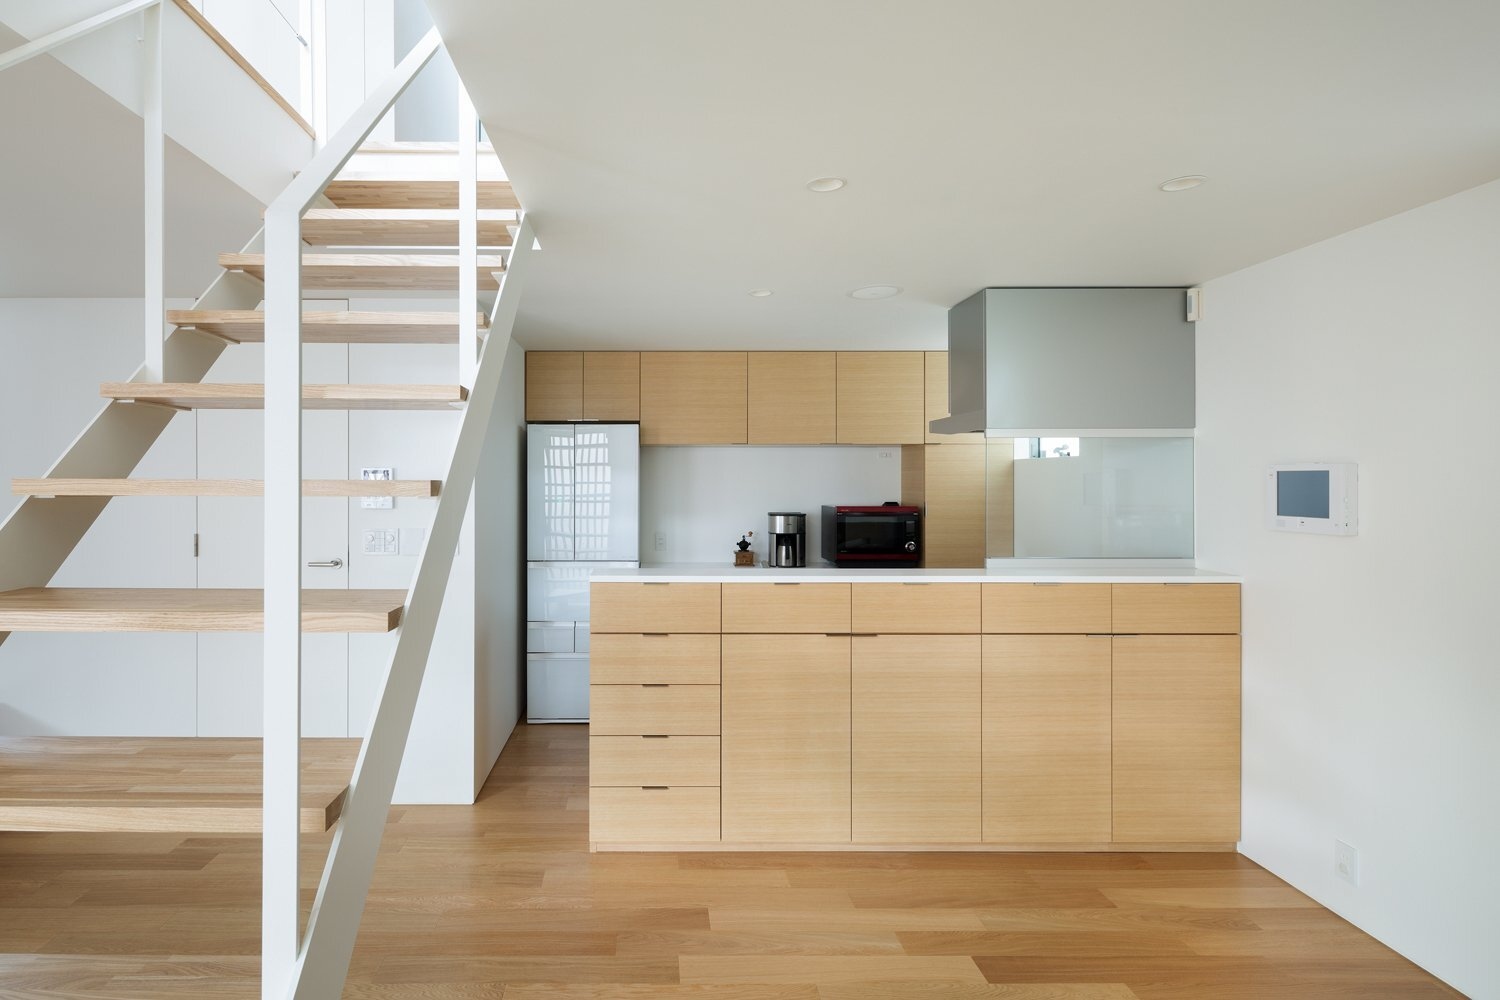 House k by yuji kimura design in tokyo japan for Furniture rental japan